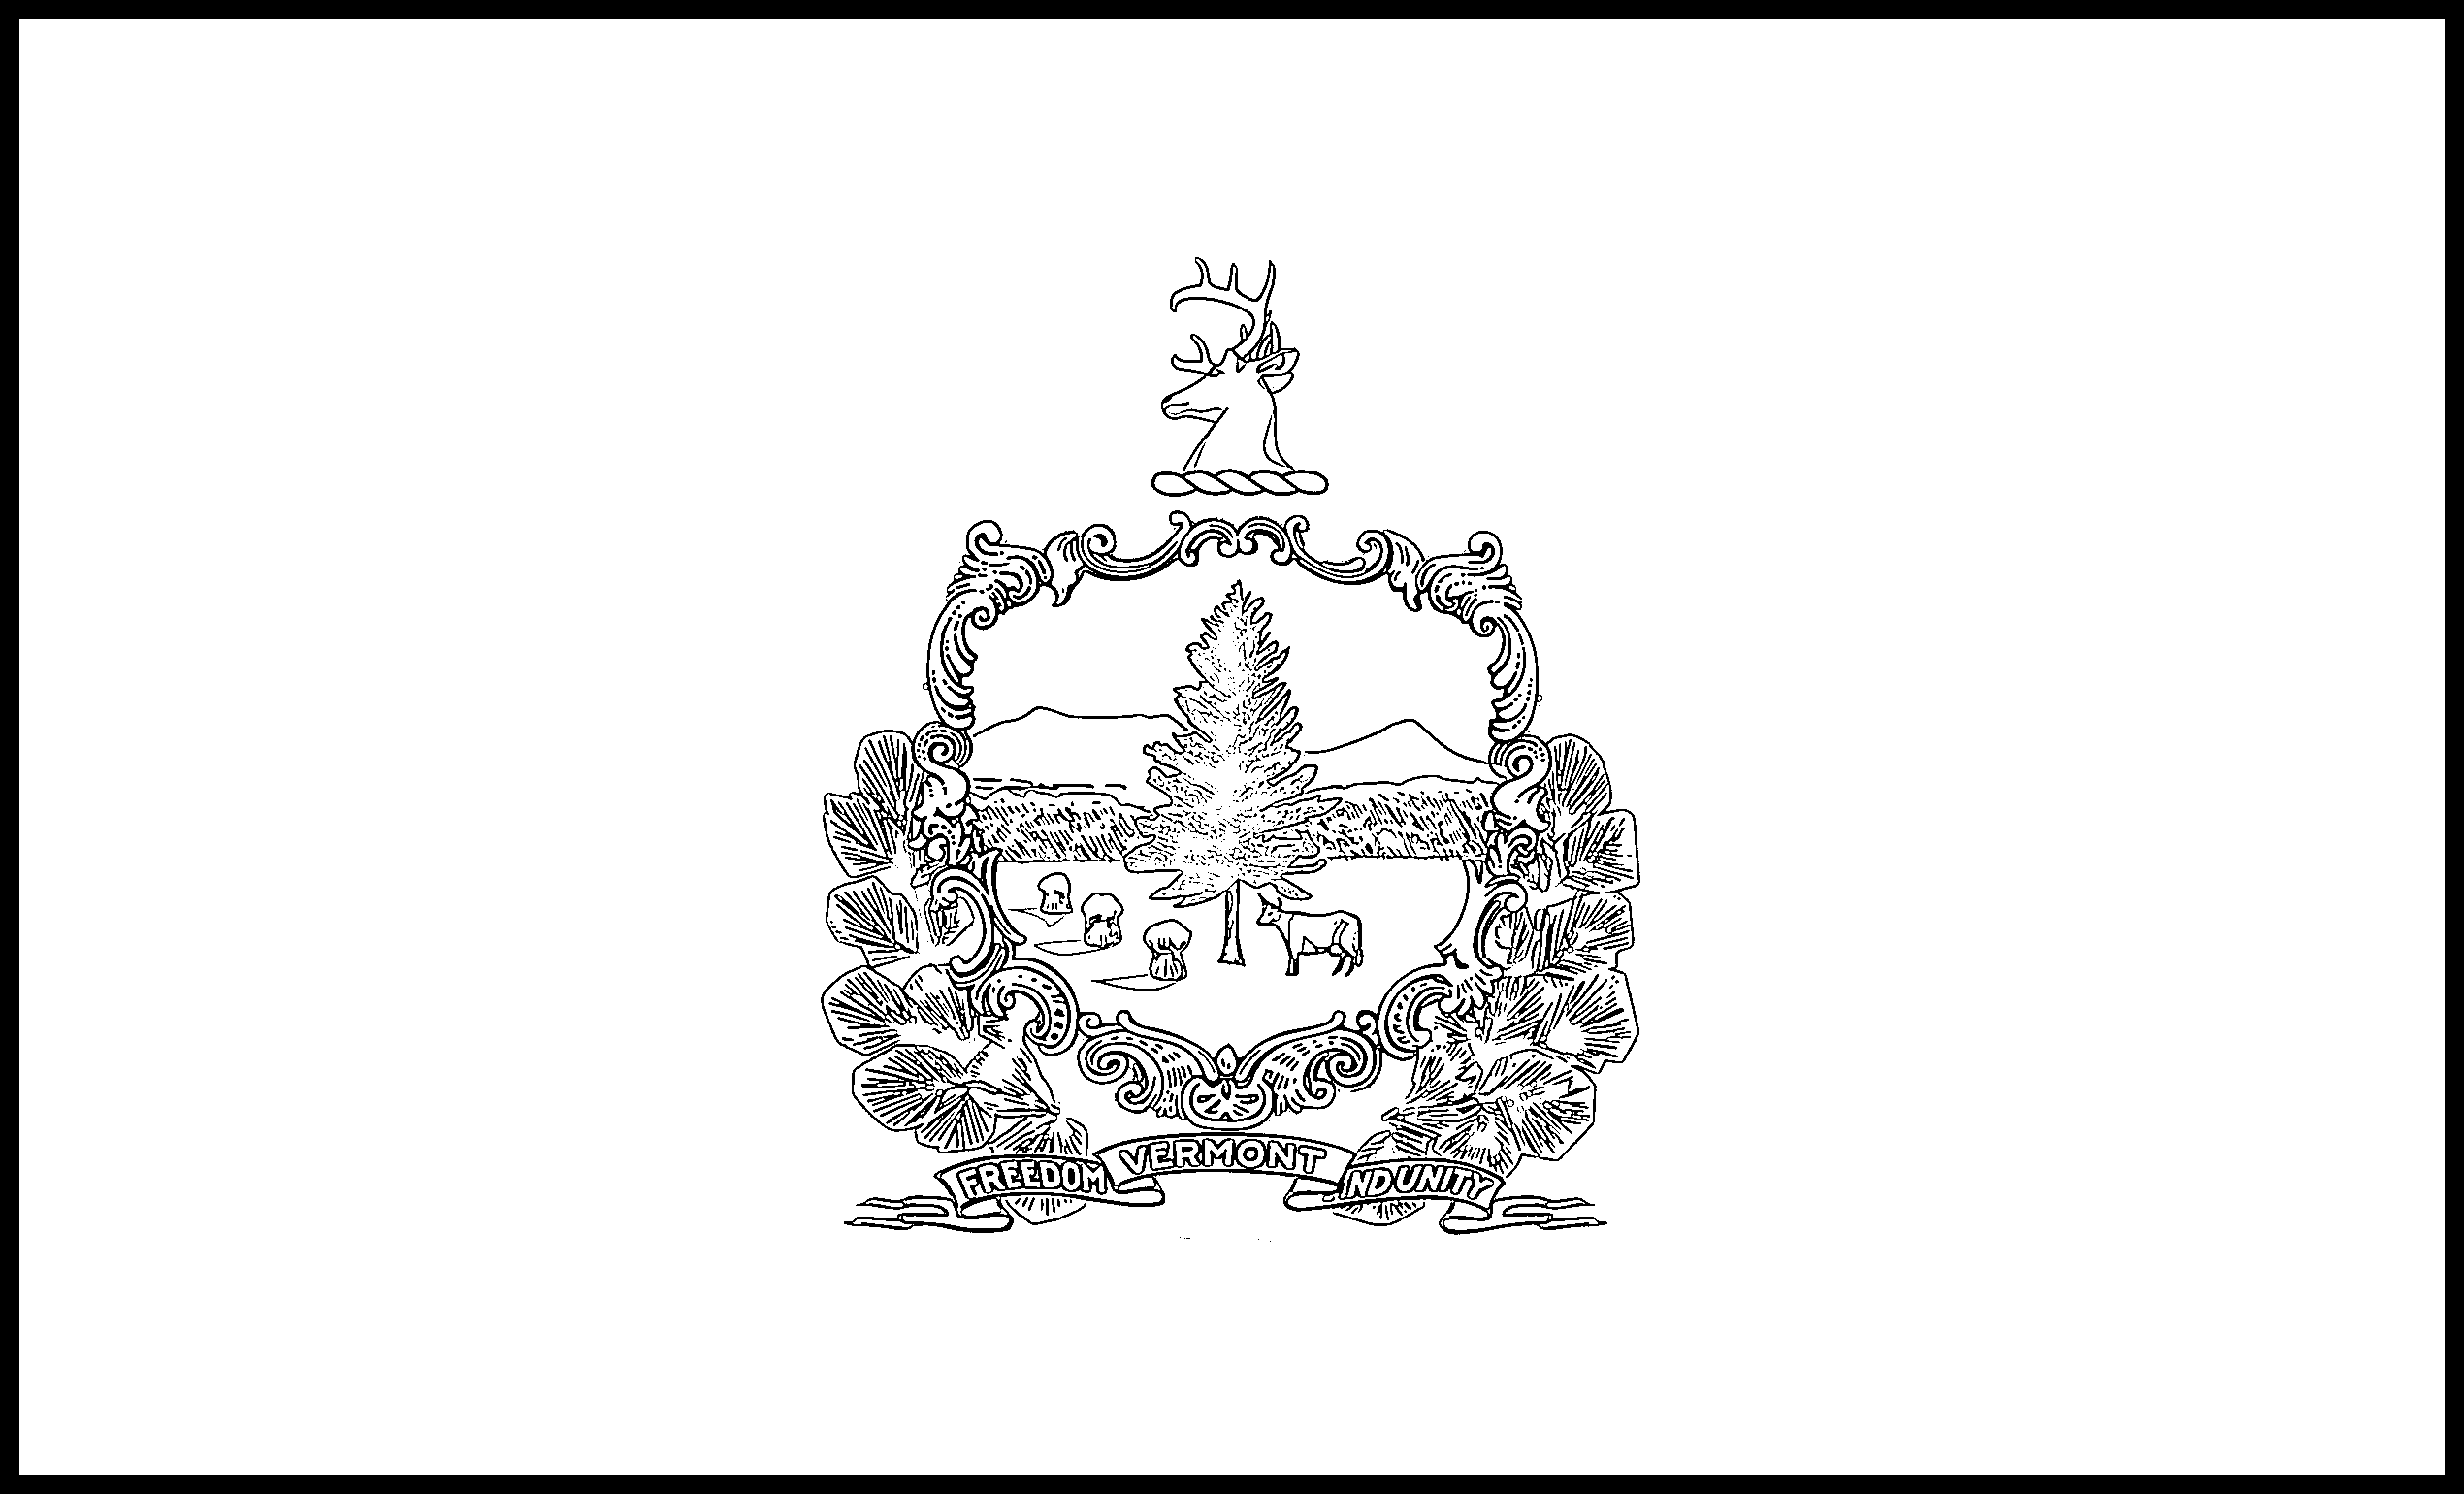 vermont state flag coloring page vermont coloring page crayolacom page flag vermont state coloring